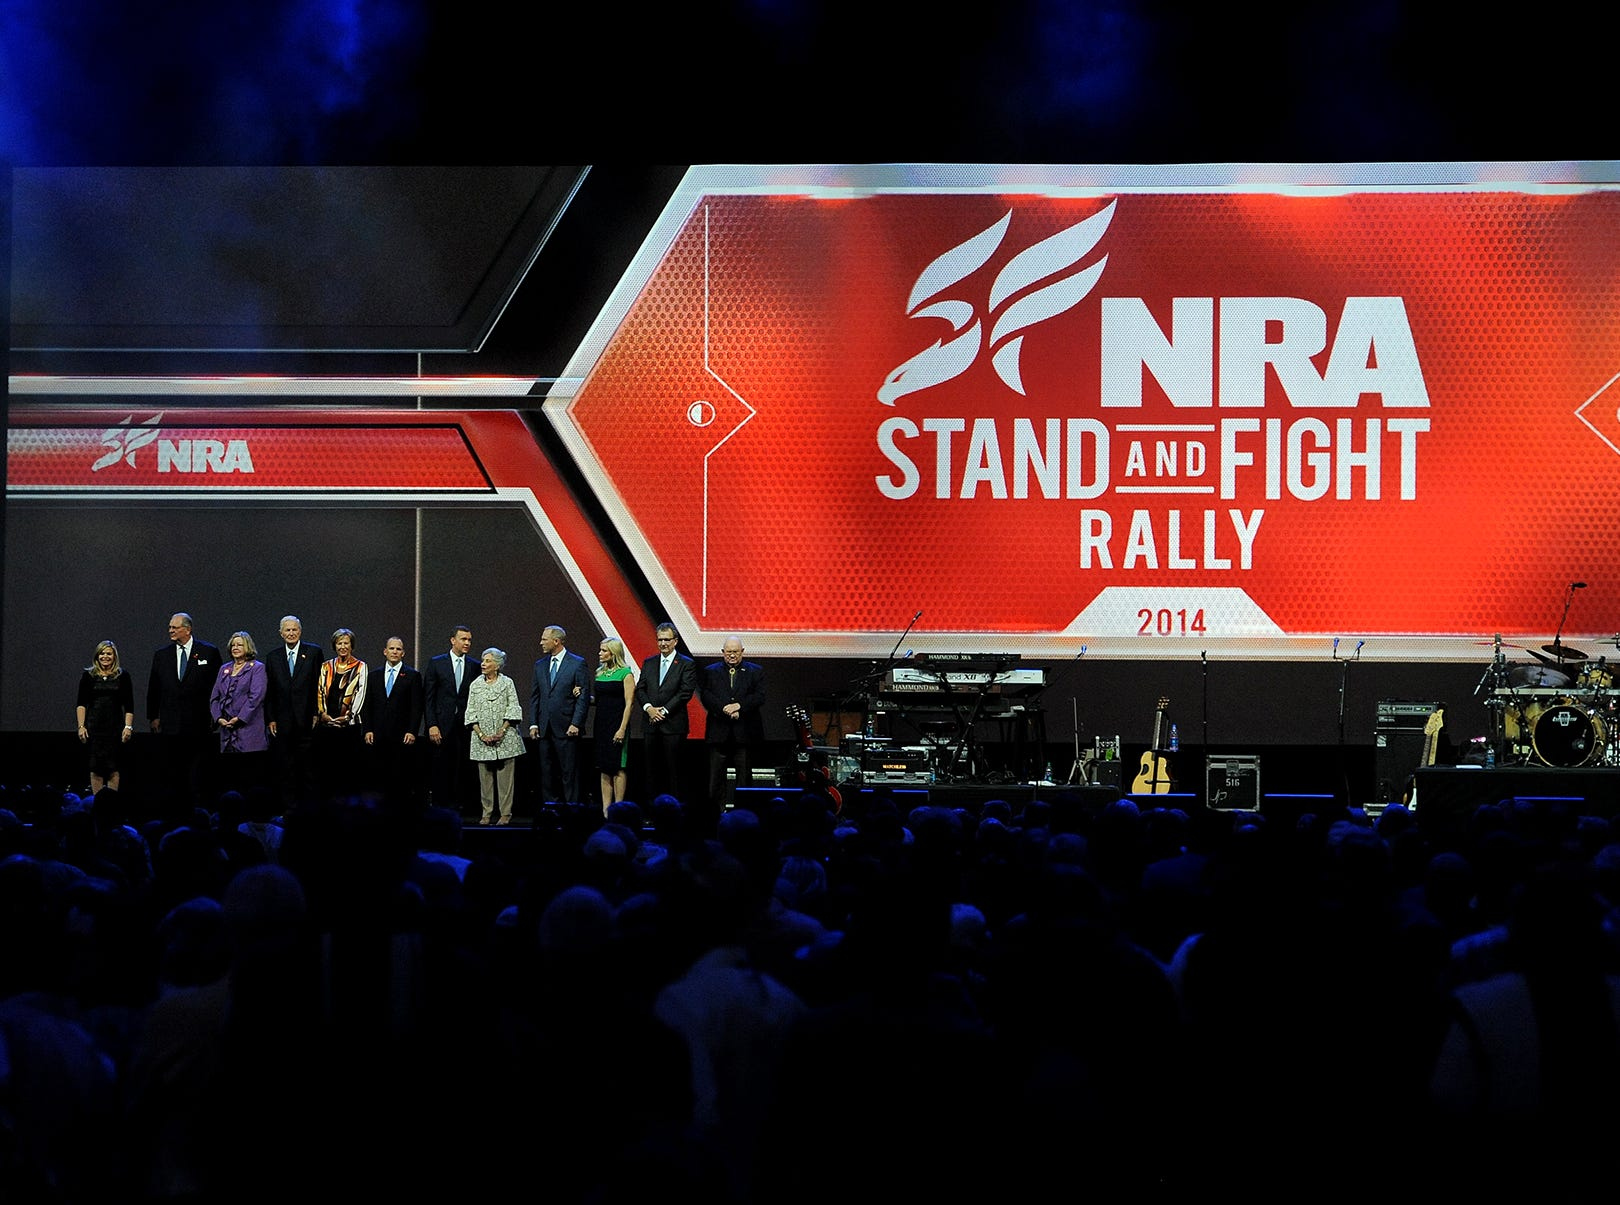 The NRA officers take the stage at the NRA Stand and Fight Rally during the 143rd National Rifle Association Annual Meeting at Lucas Oil Stadium, Saturday, April 26, 2014, in Indianapolis.